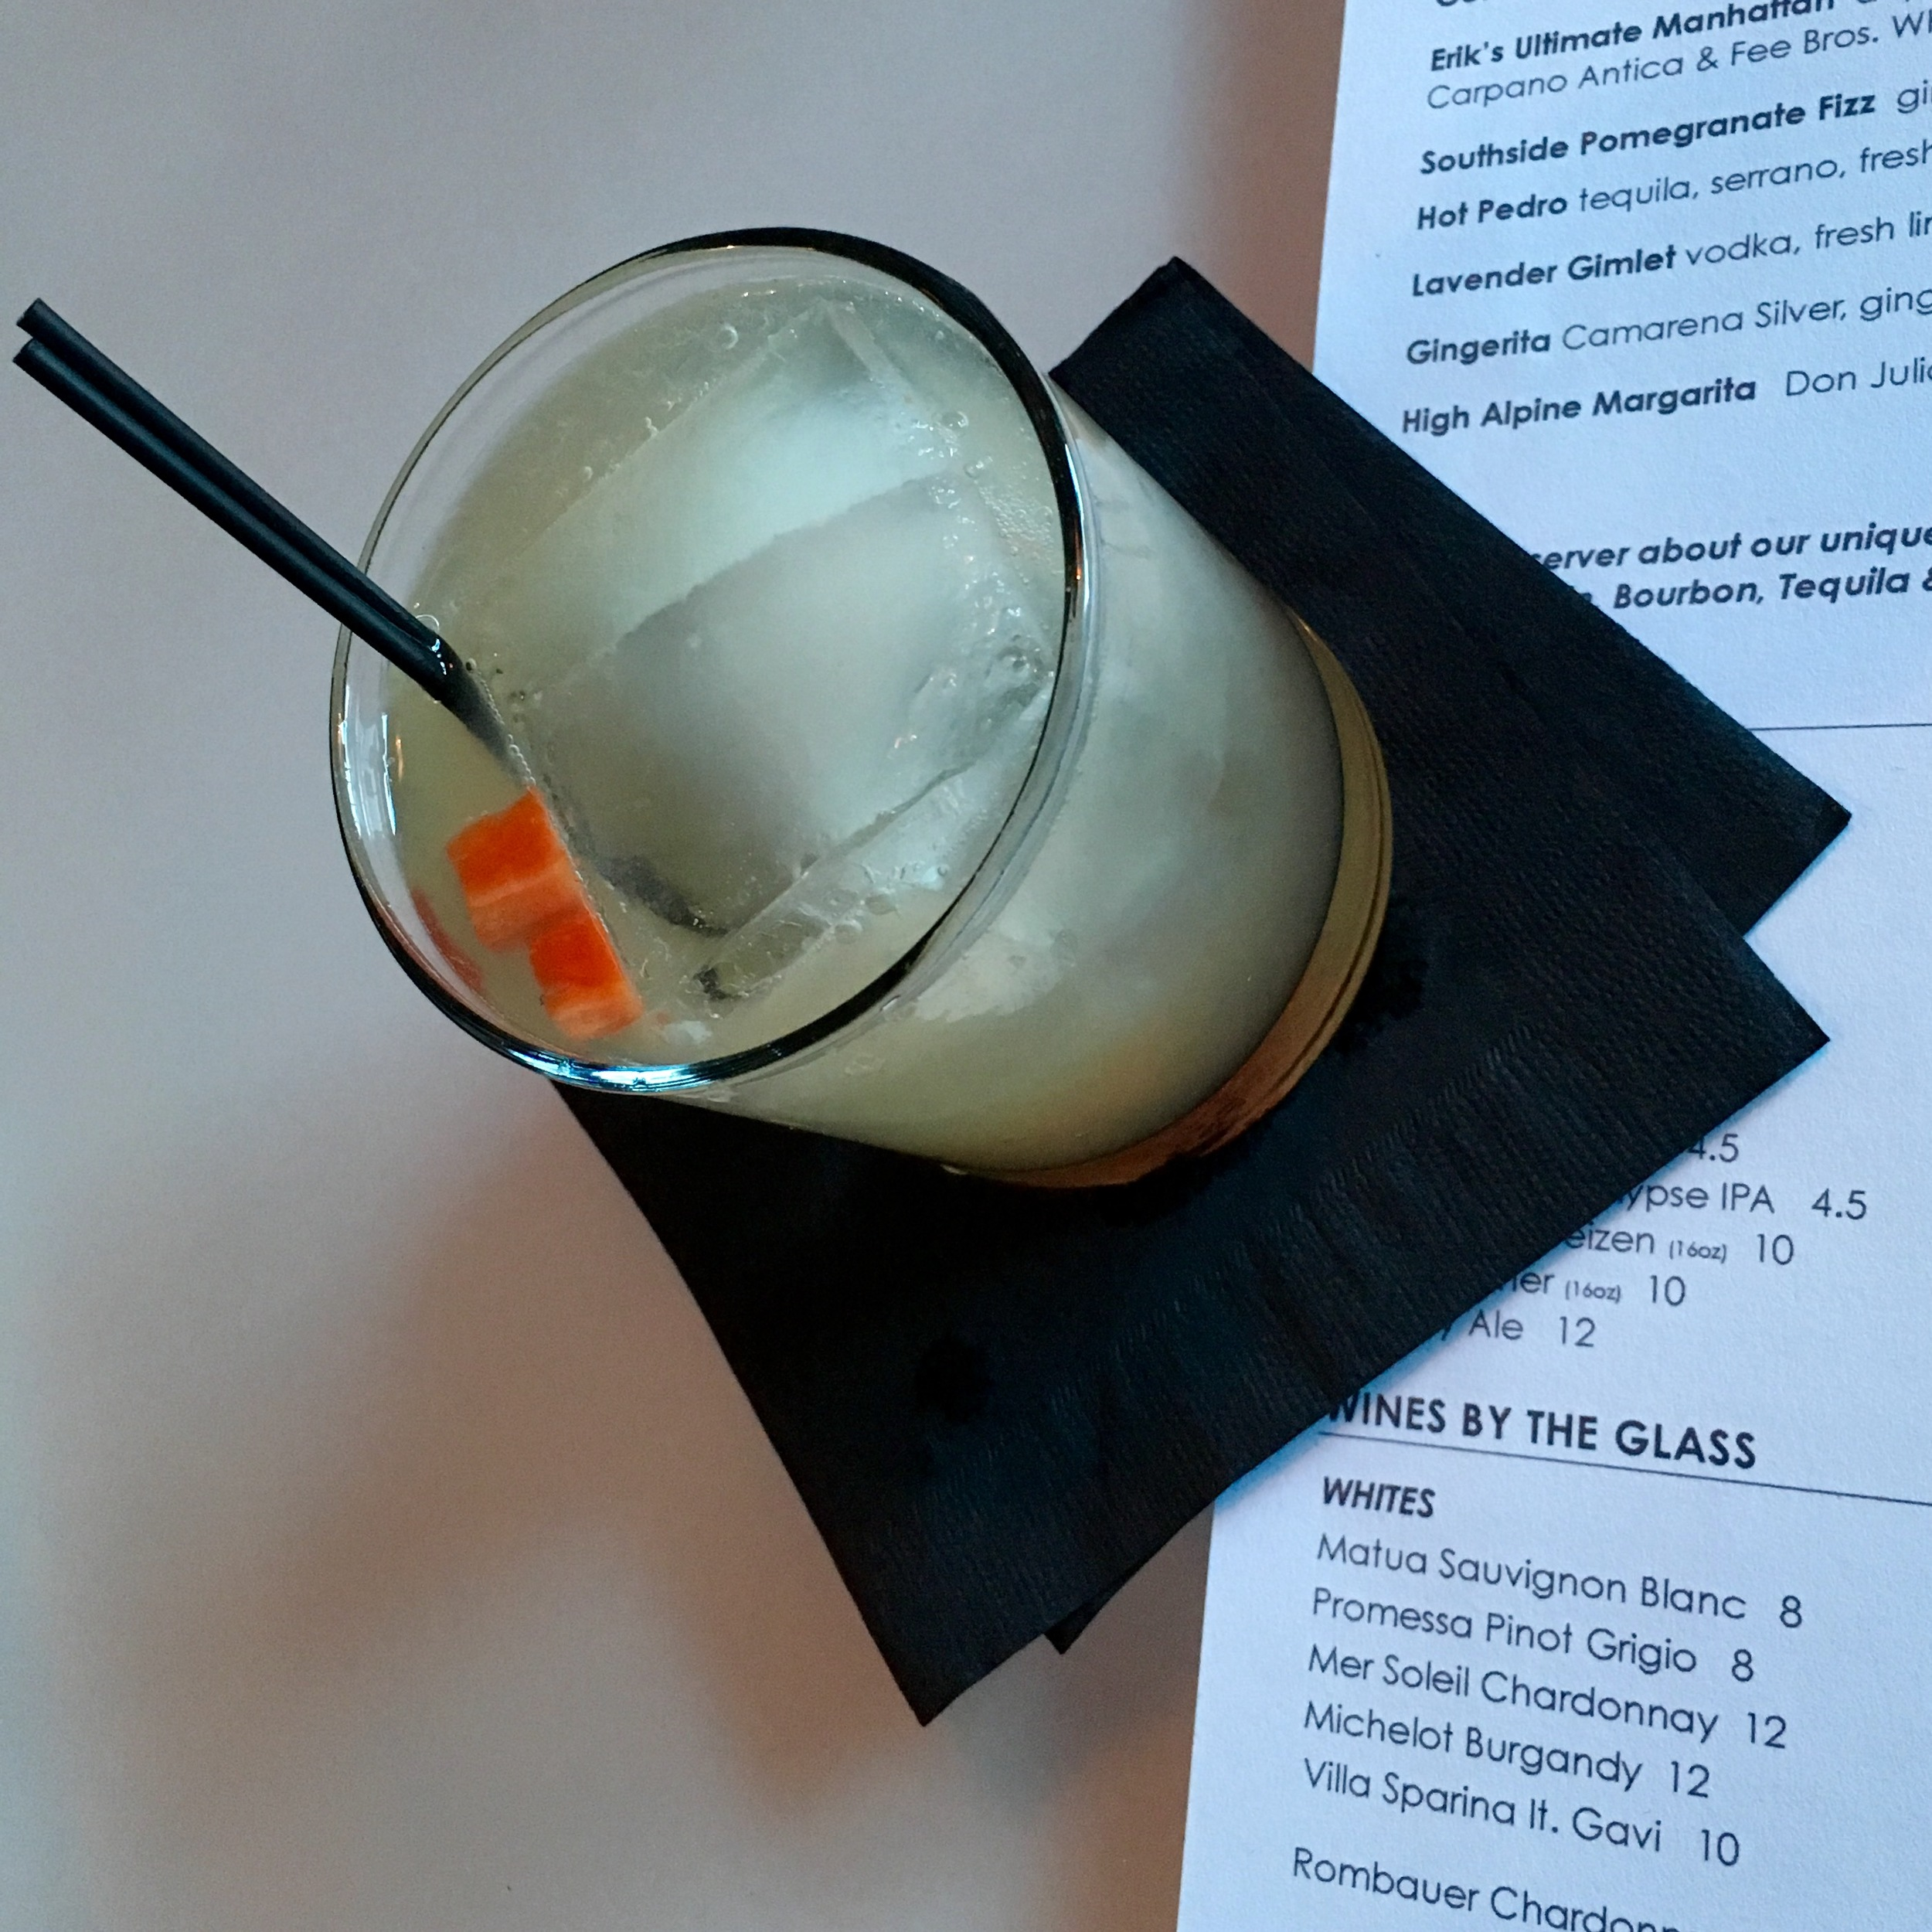 CBG's Hot Pedro is a spicy sip with illicit allure, $15